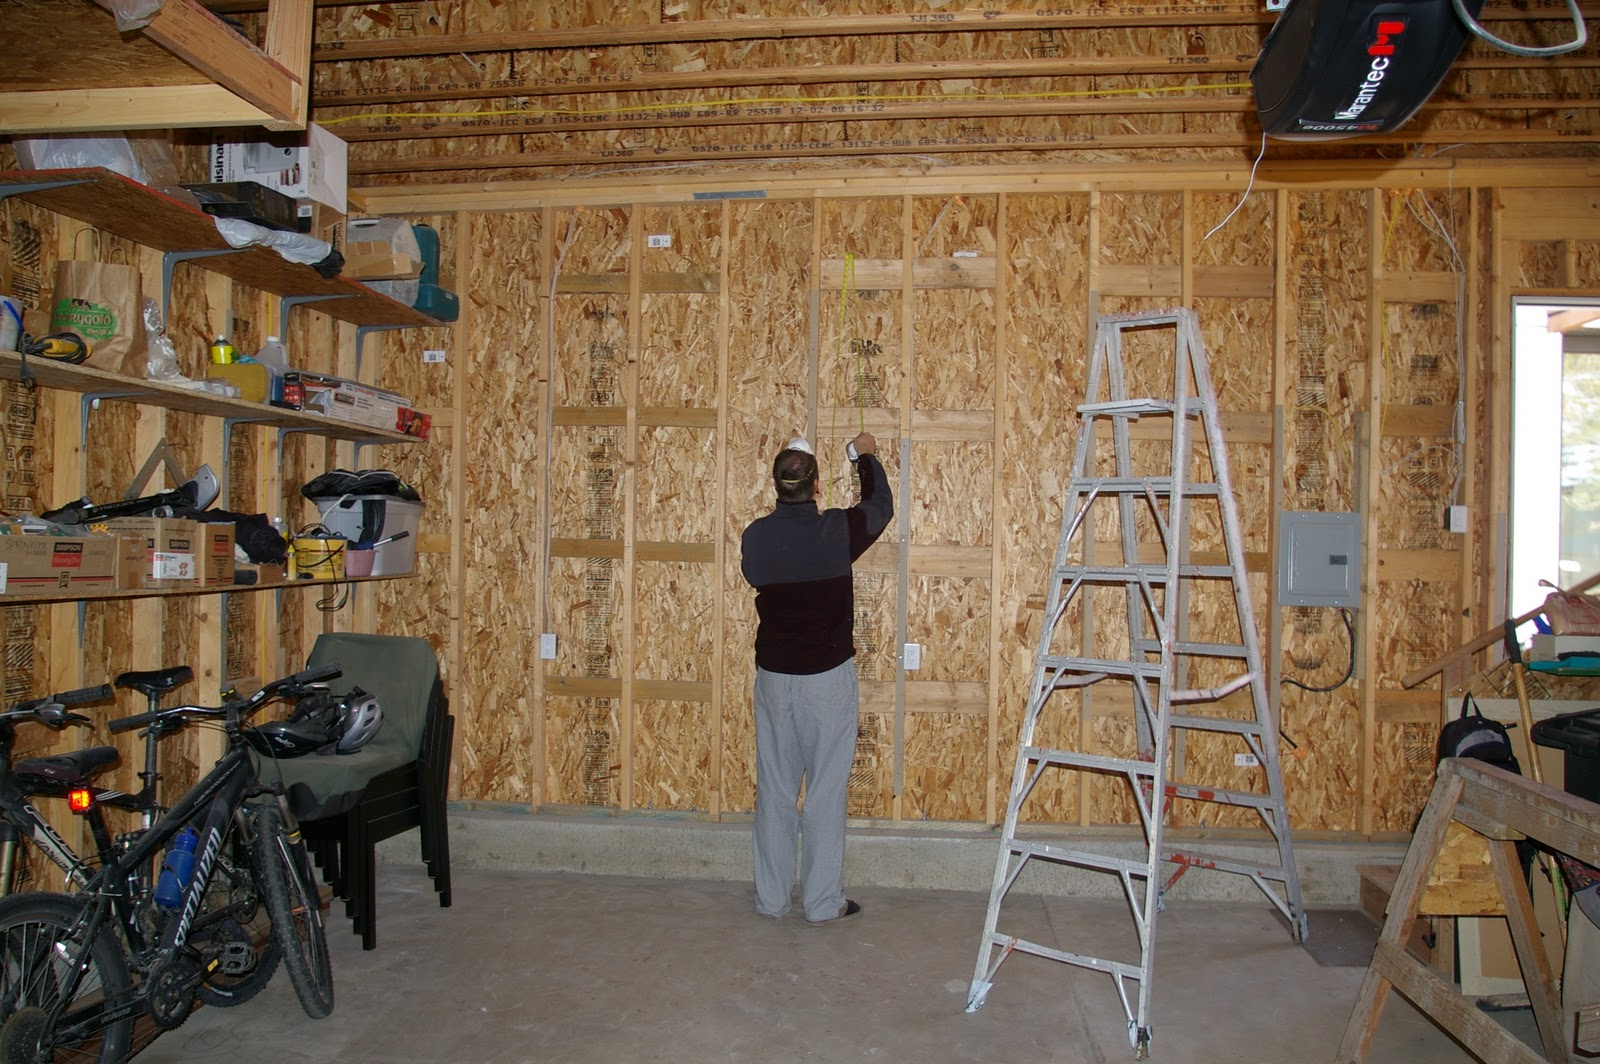 garage insulation — LiveModern: Your Best Modern Home on how to finish basement, how to paint concrete floors, how to organize bins in garage, how to organize your garage, how to finish an attic, how to put your garage in order, how to organize garage space, how to finish drywall,